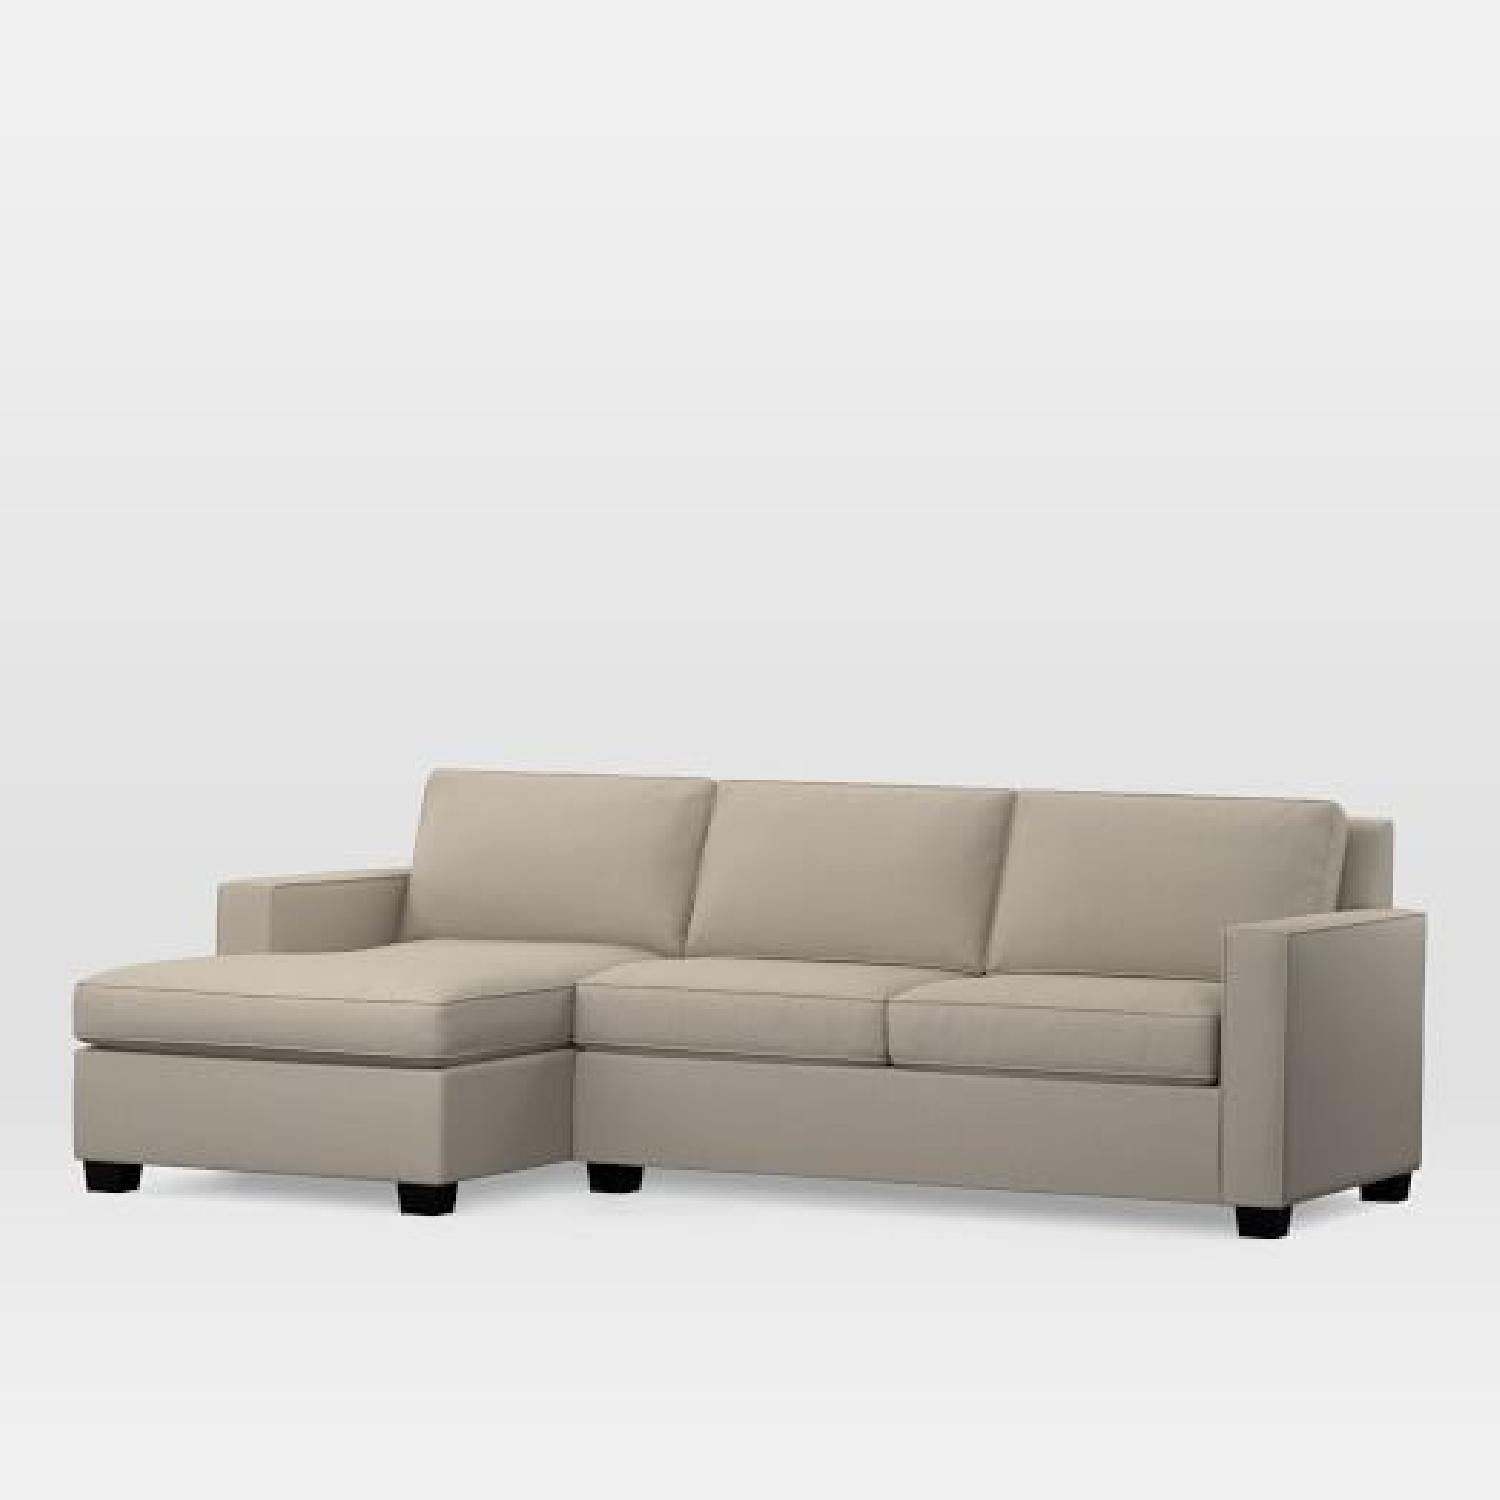 West Elm Henry 2-Piece Chaise Sectional Sofa-3